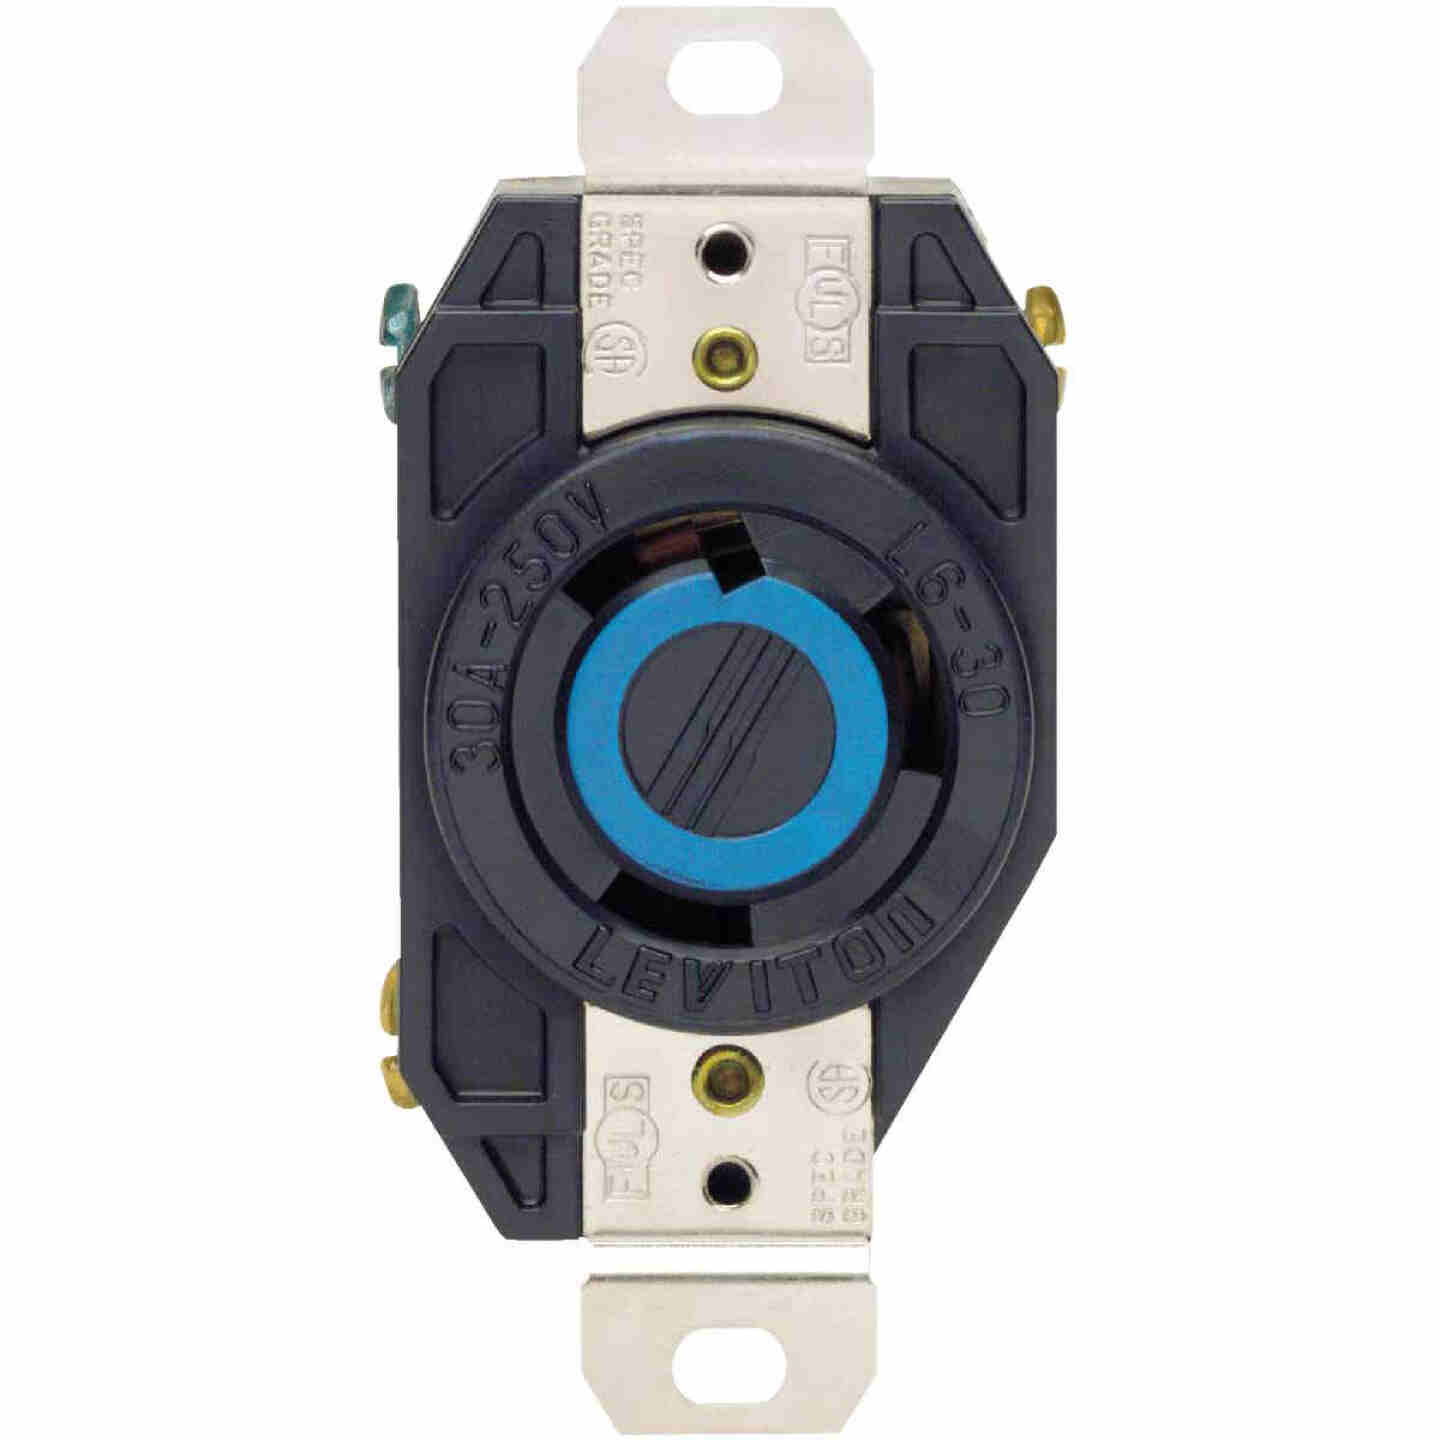 Leviton 30A 250V Black Industrial Grade L6-30R Locking Outlet Receptacle Image 2